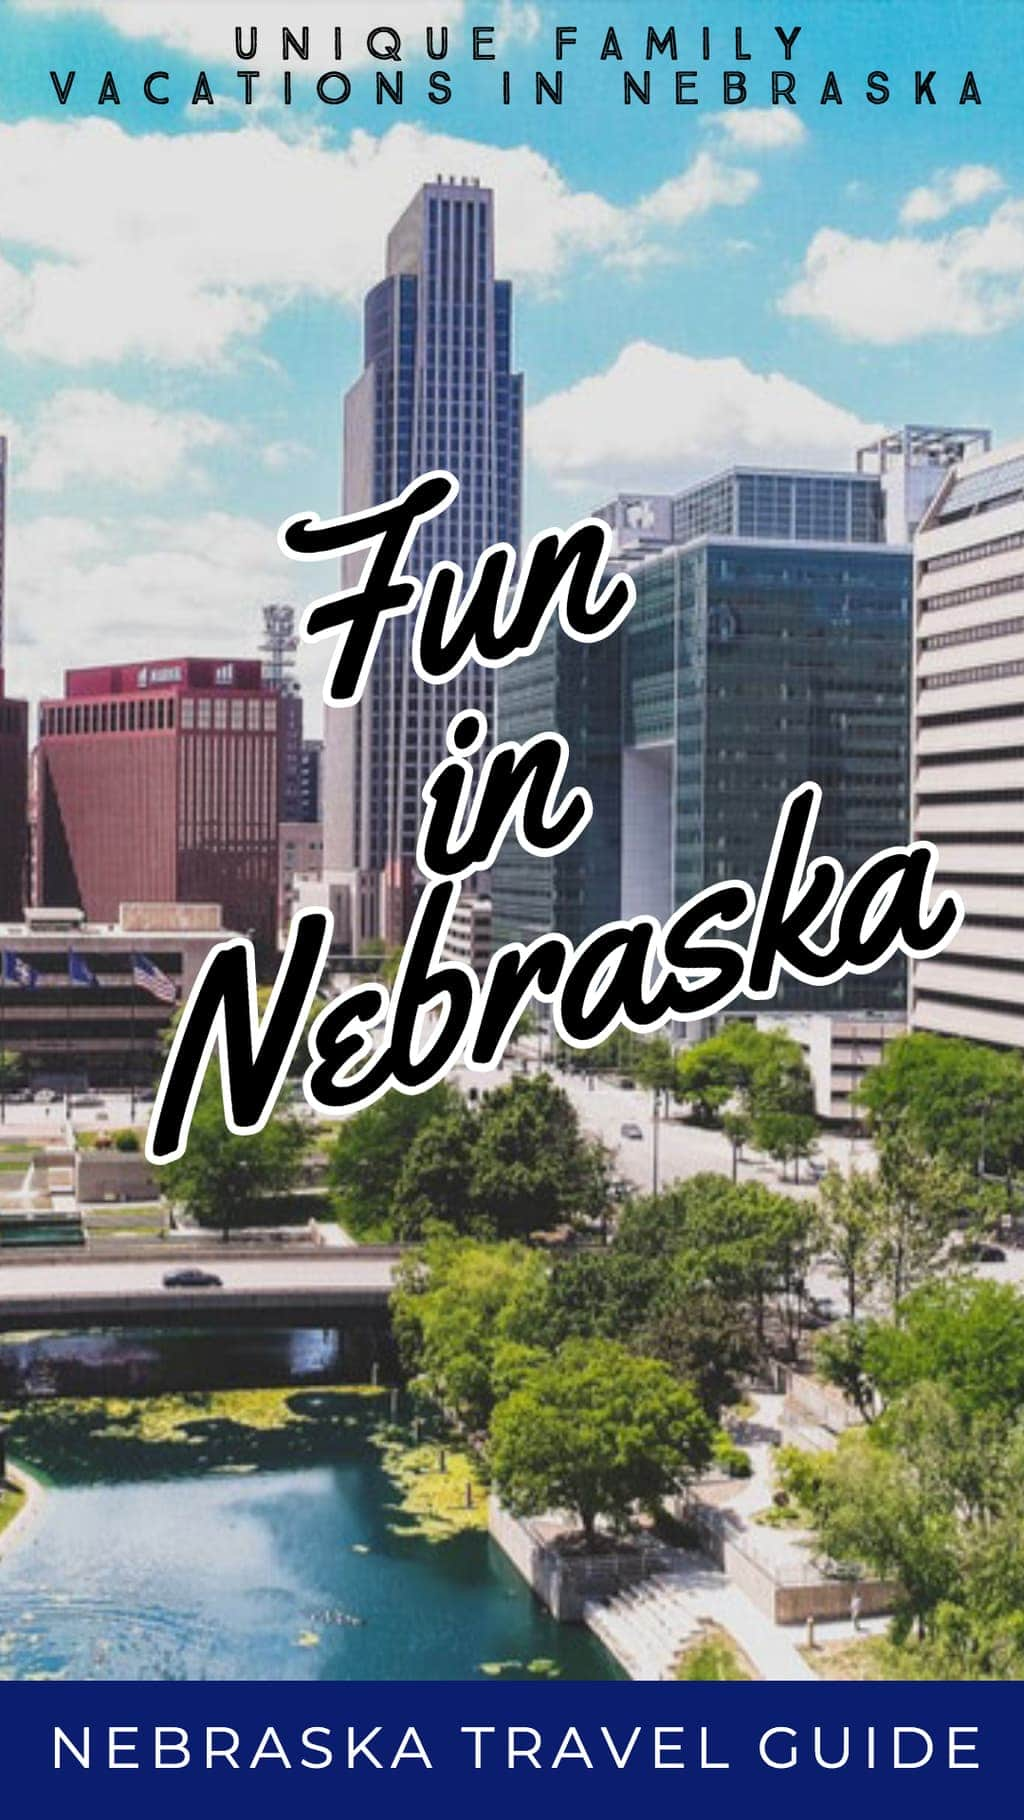 If your family loves nature, adventure or metropolitan cities, a visit to Nebraska may be for you. Here's a list of some of the top family-friendly things to do in Nebraska. #Nebraska #FamilyTravel